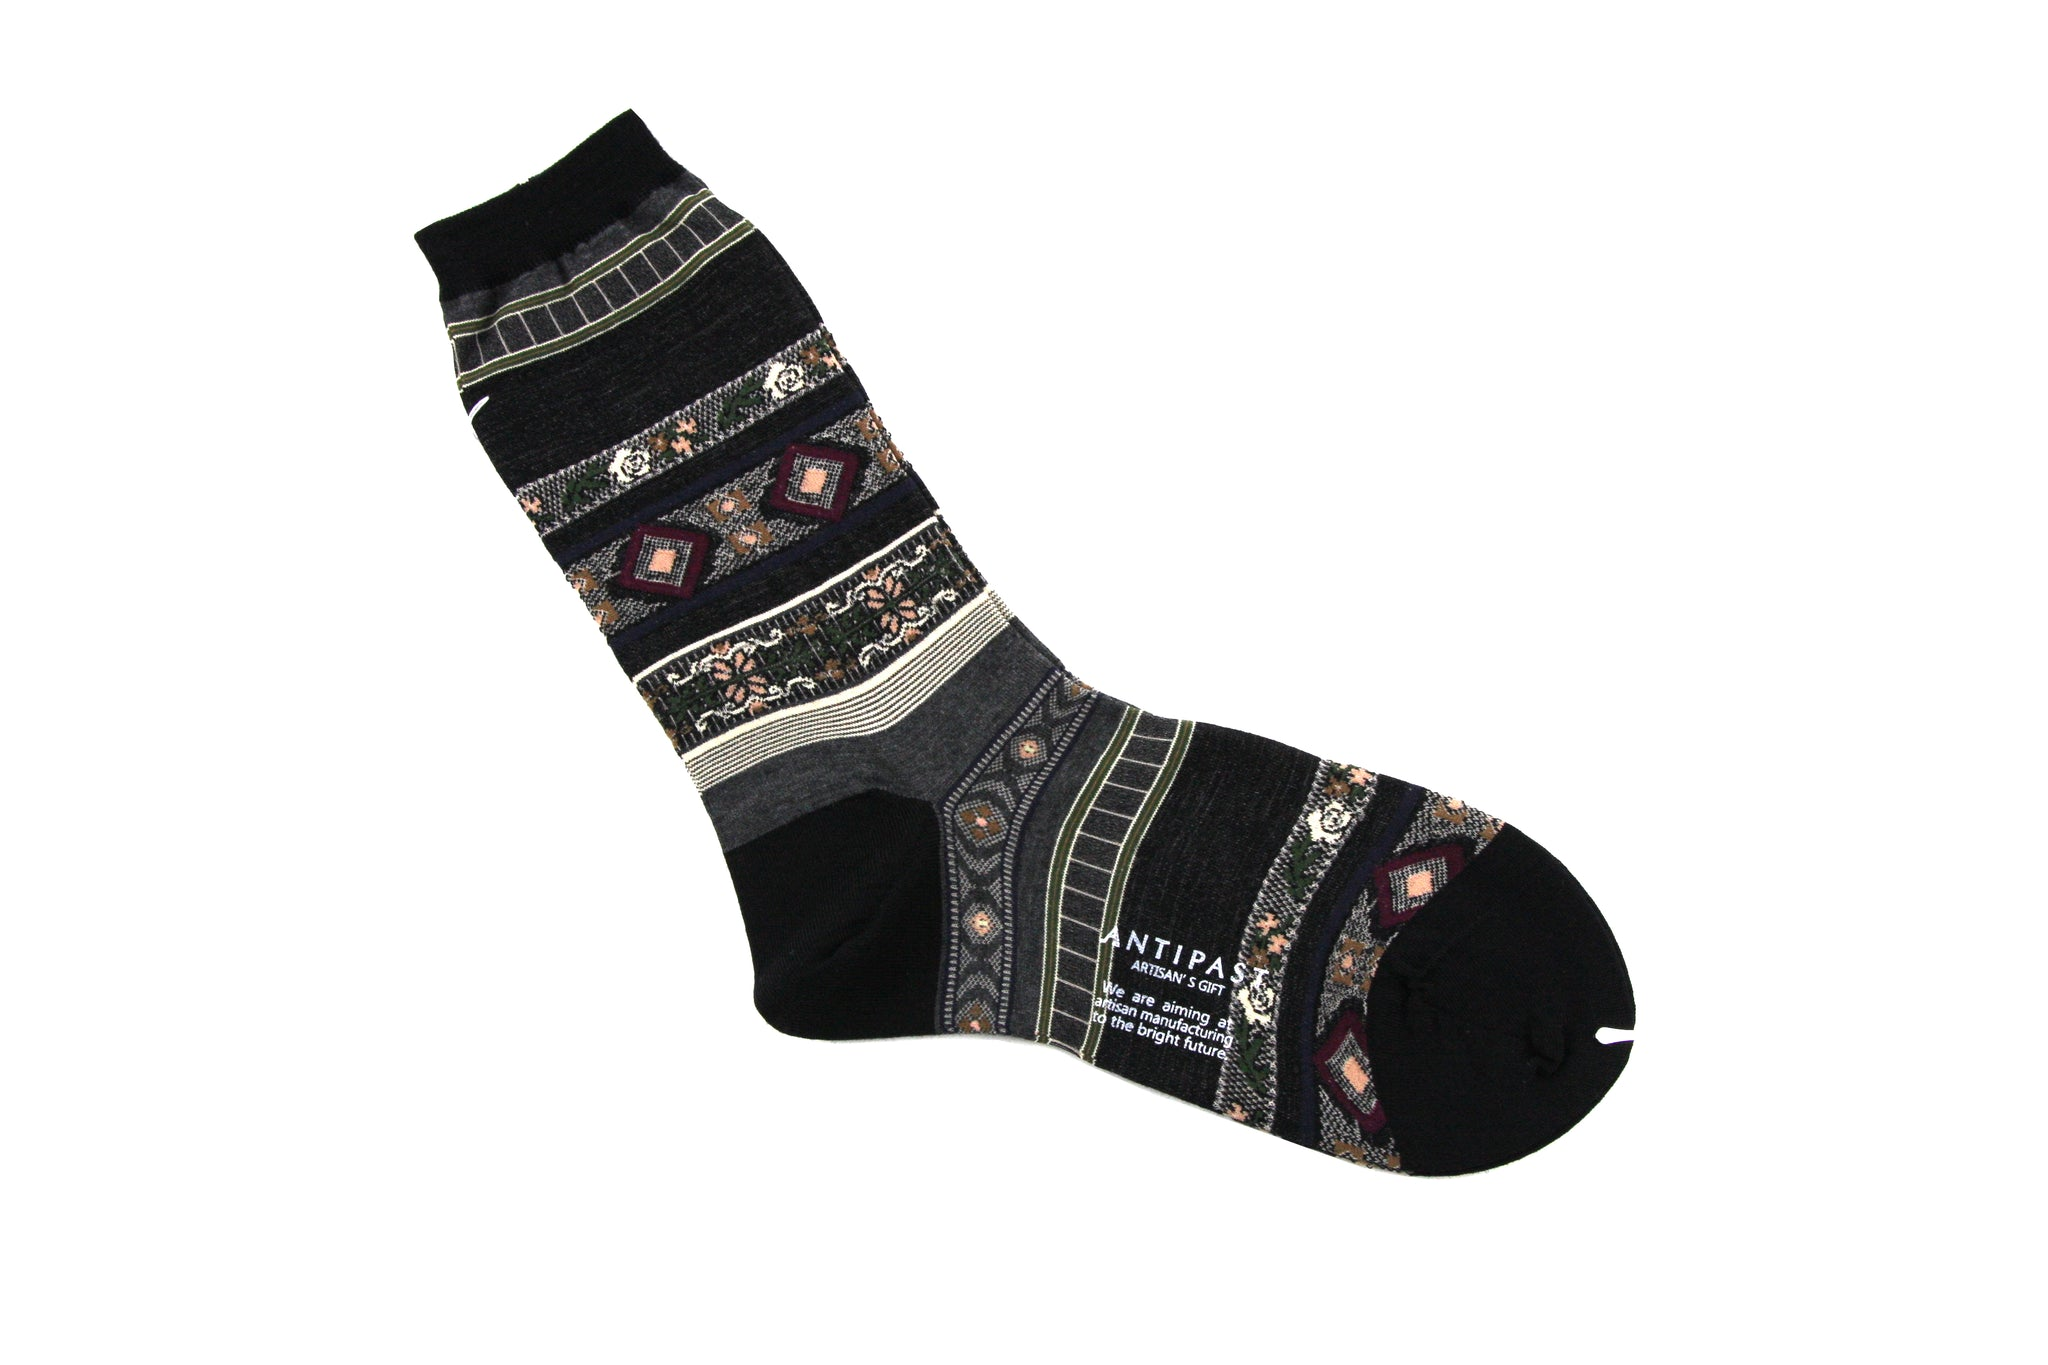 Antipast Womens Socks from Japan - Tyrollean Stripes at Halo Shoes Black